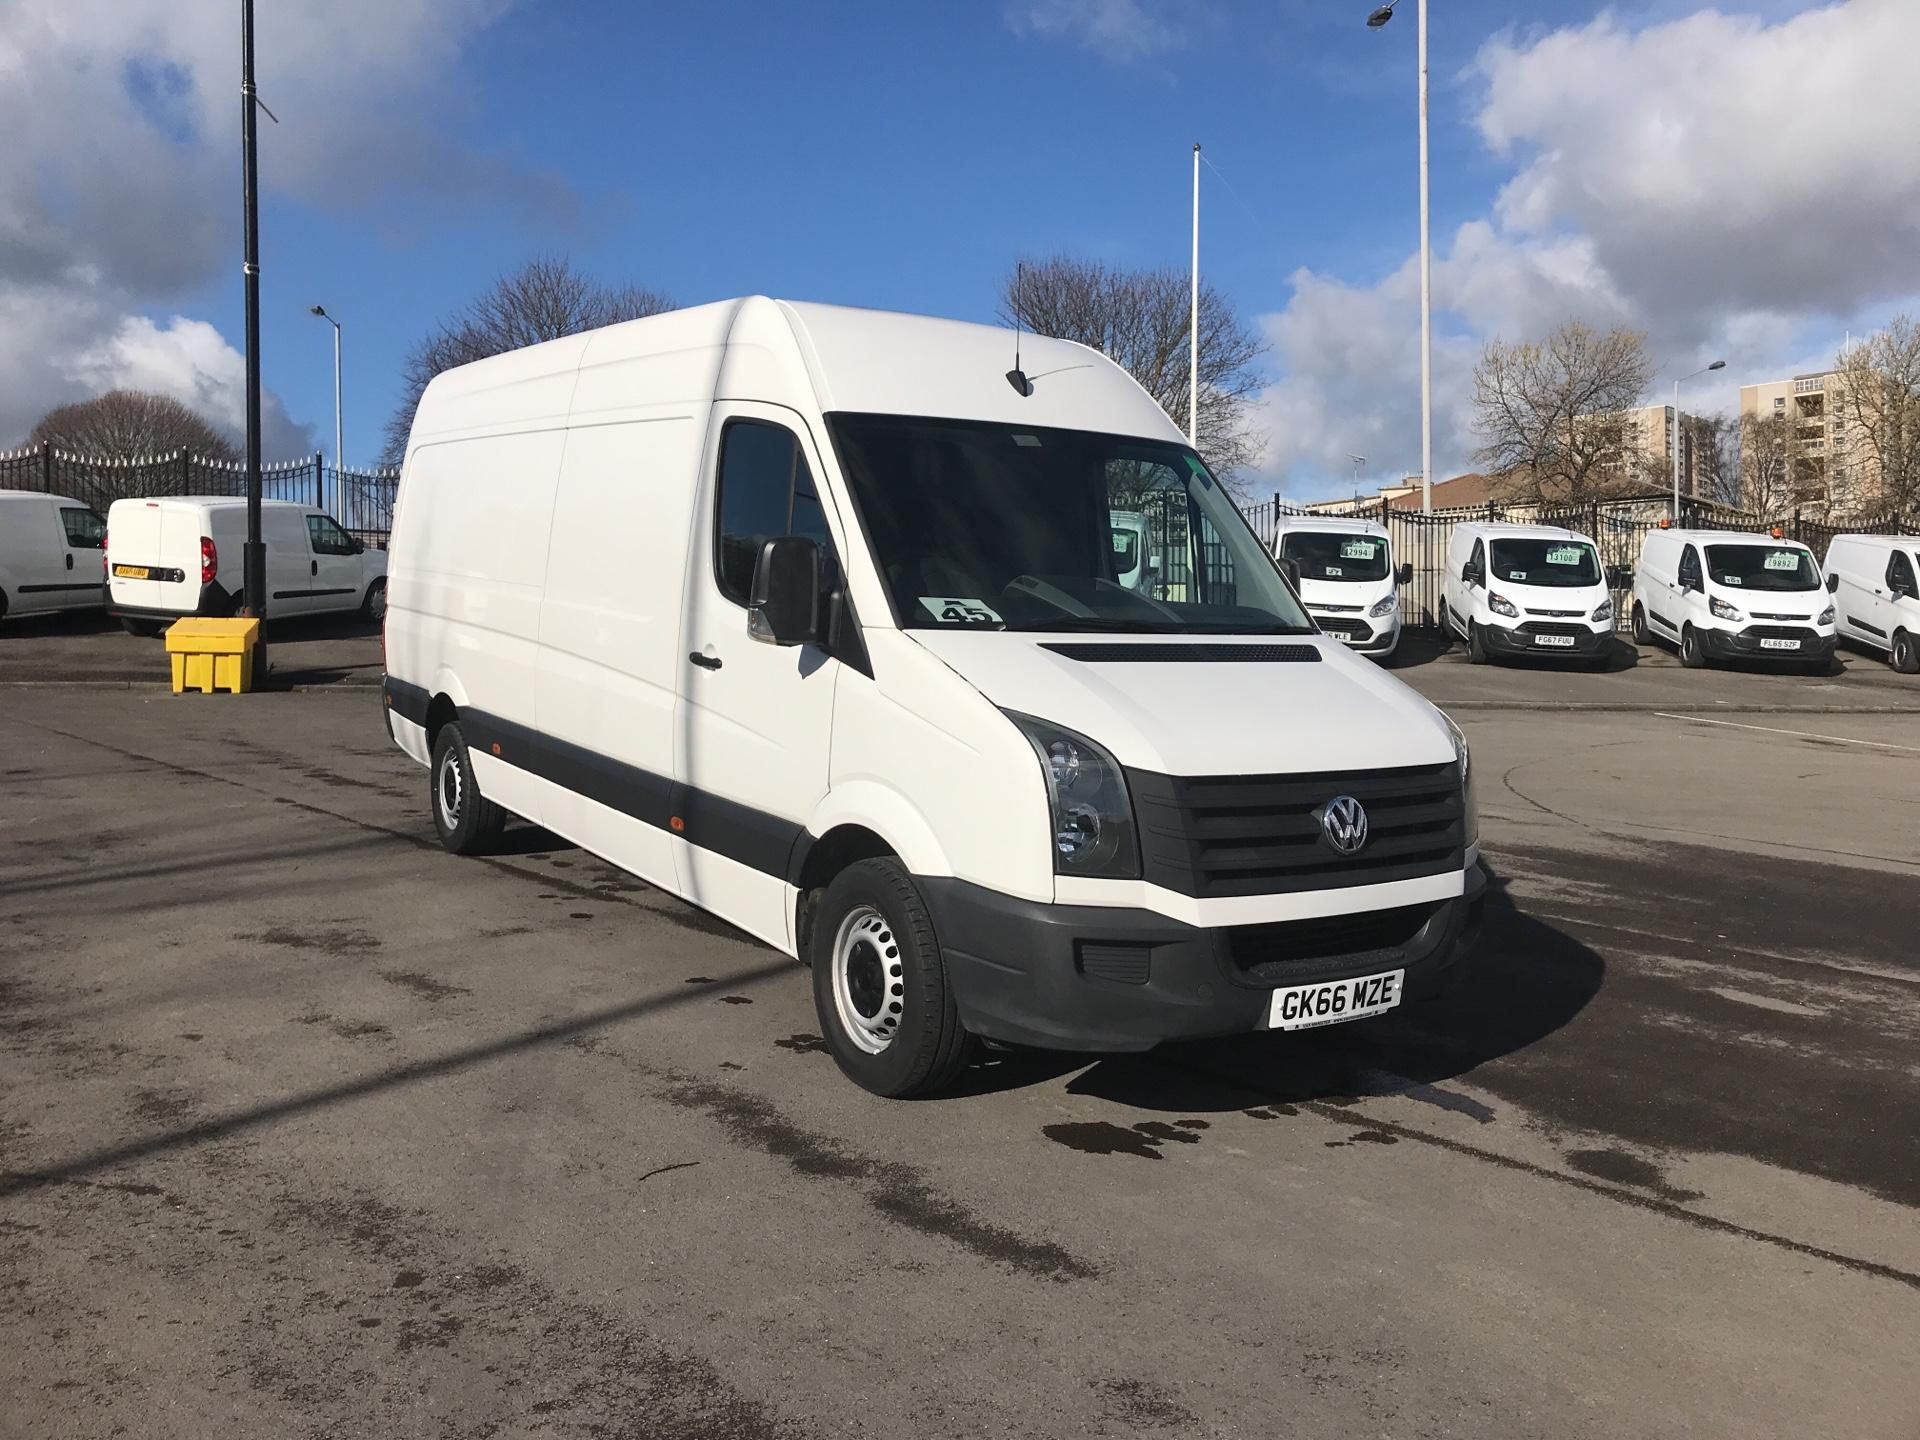 2016 Volkswagen Crafter 2.0 Tdi 136Ps High Roof Van (GK66MZE)